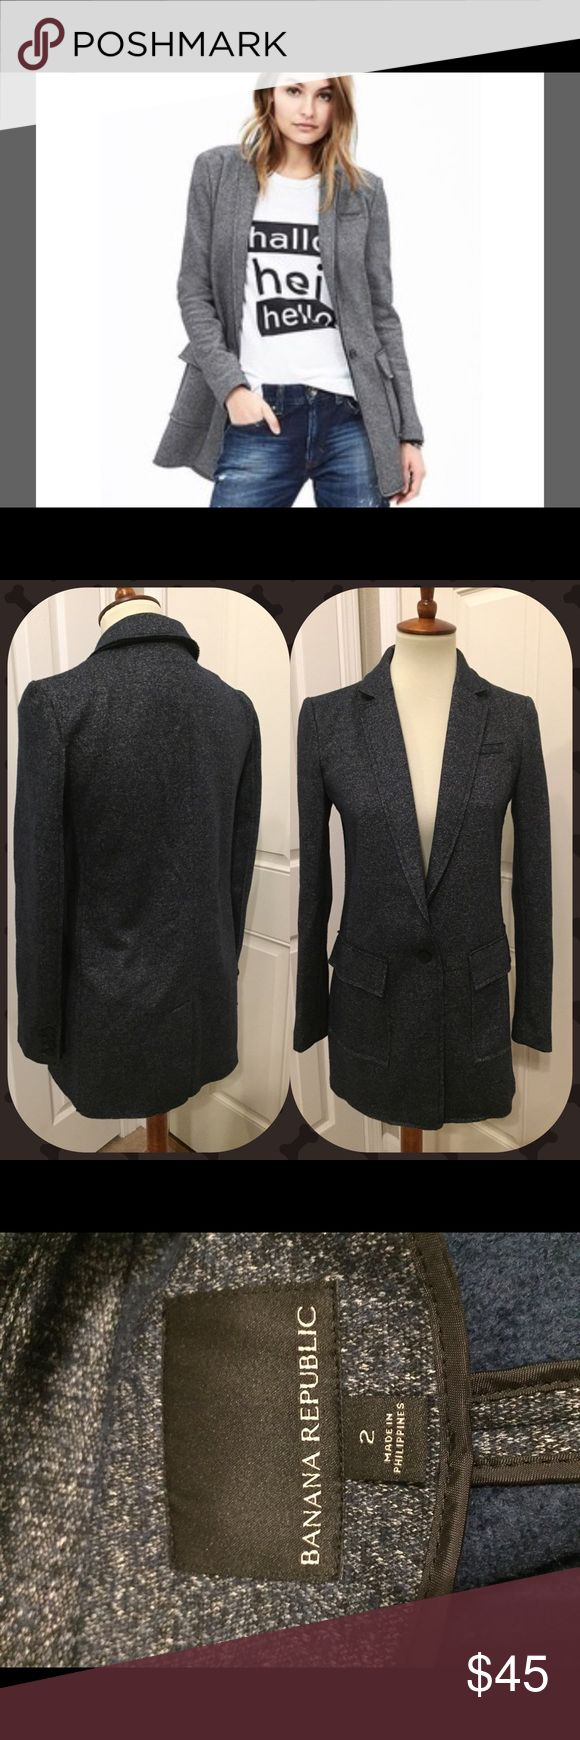 Banana Republic blazer This dark gray blazer is stylish and is like new! It would make a great addition to anyone's closet! It's a 2 but fits more like a 4 or a small 6. The fabric definitely has some stretch to it. Banana Republic Jackets & Coats Blazers